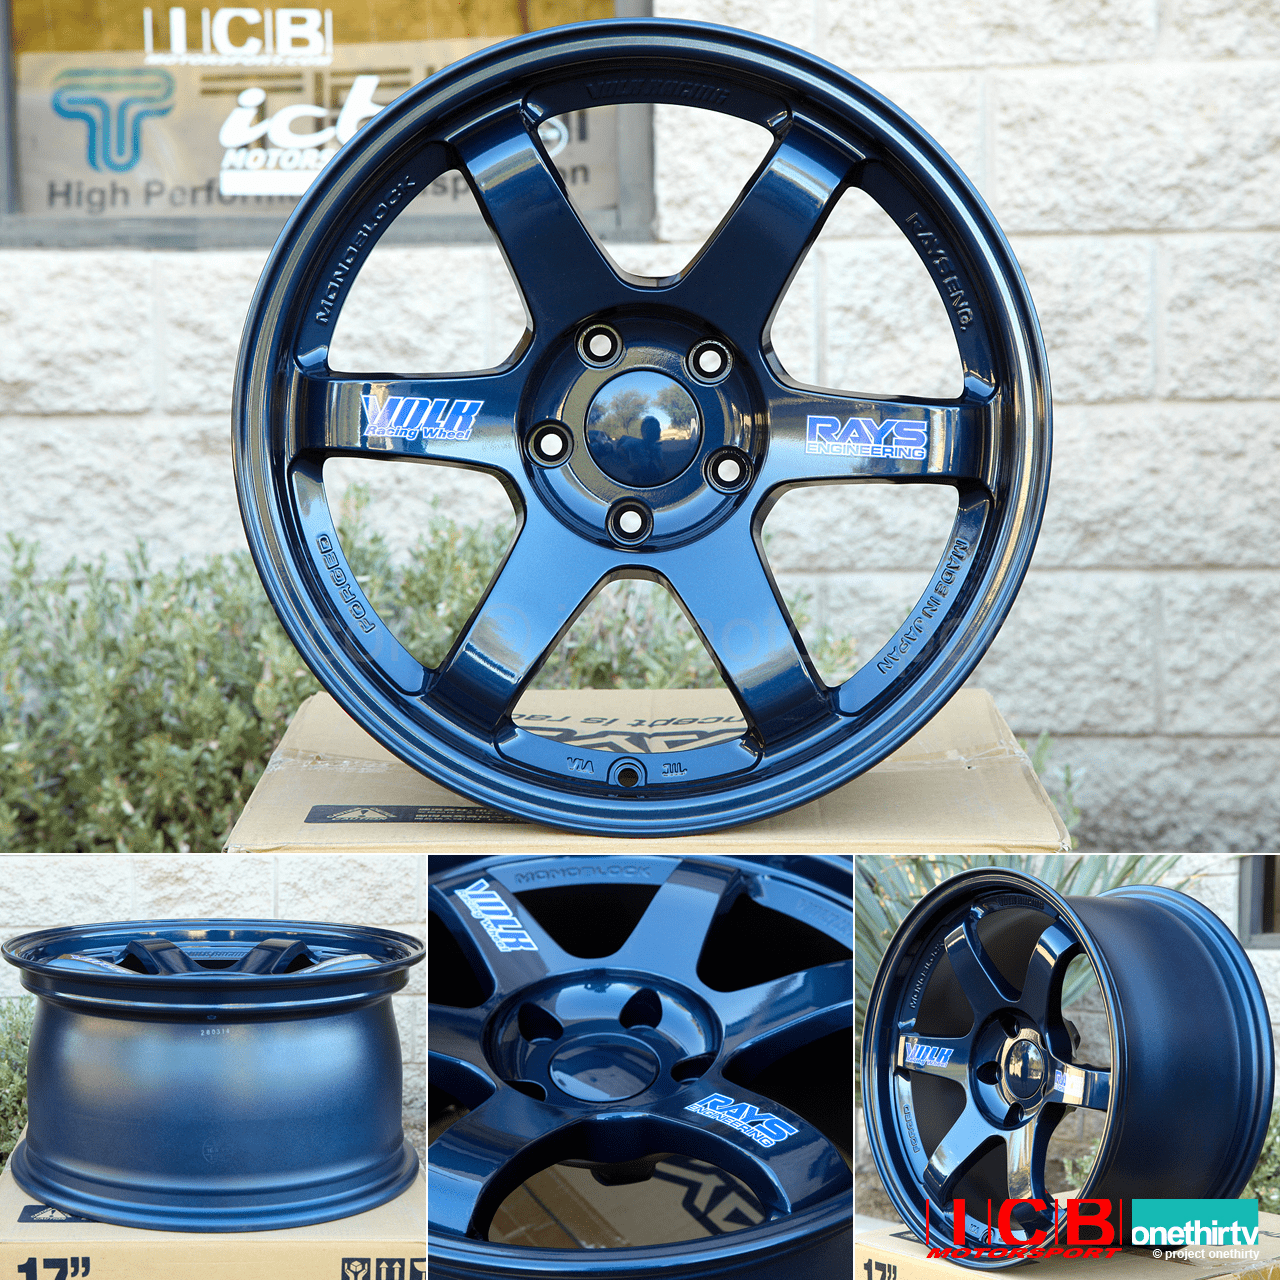 Rays Volk Racing TE37 Wheels 17X9 5X114.3 +22 Offset Concave Face Mag Blue